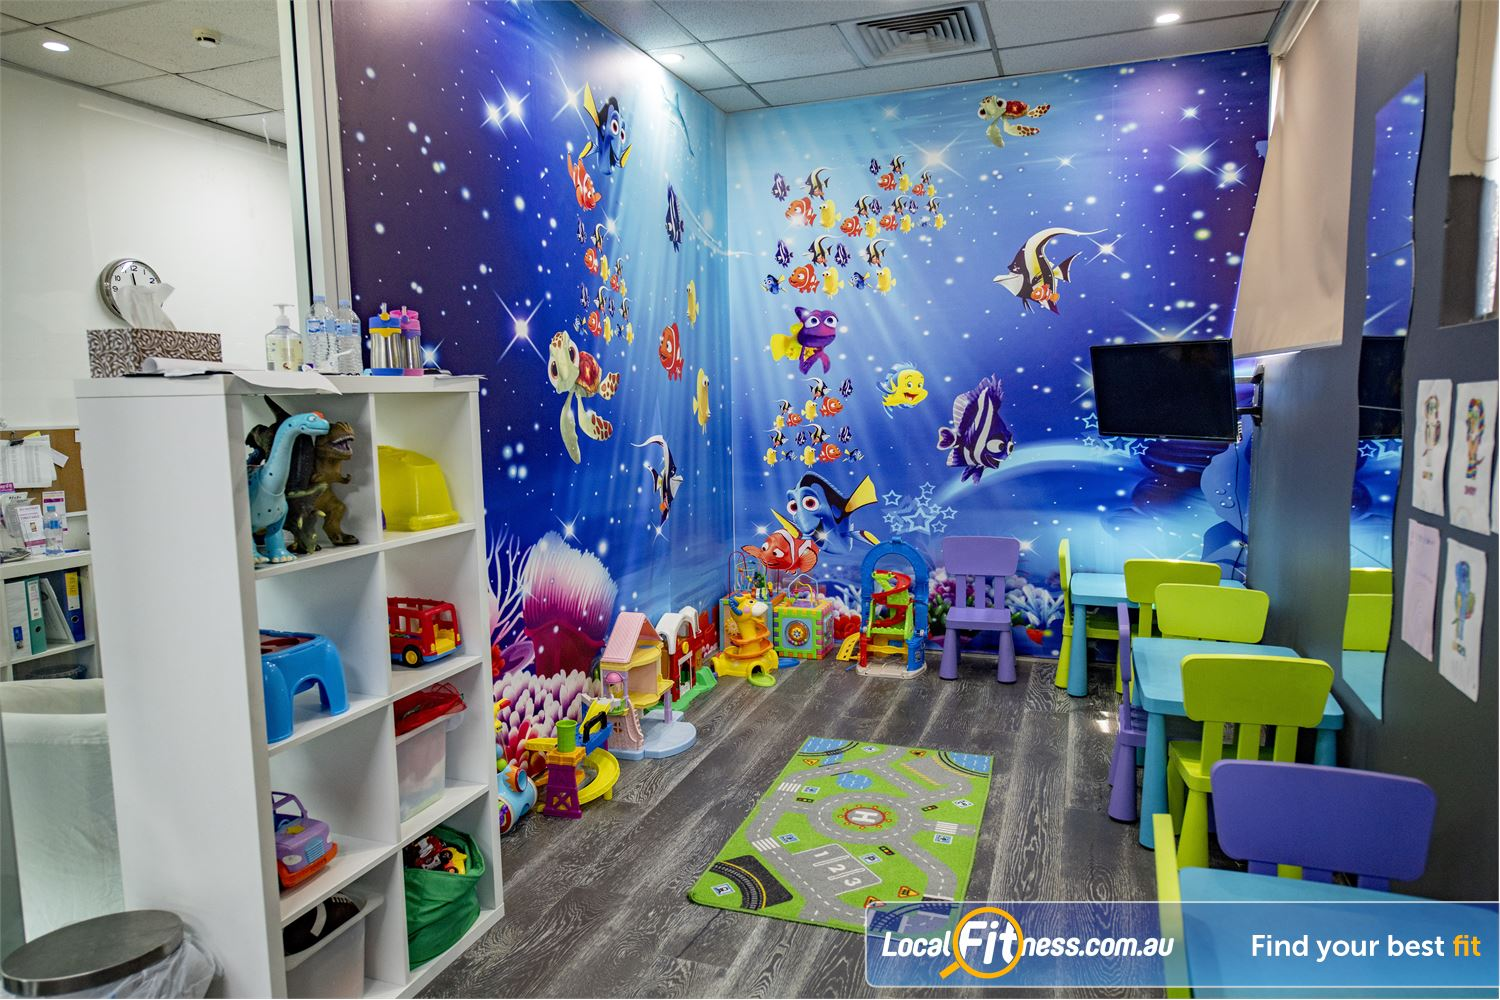 Fernwood Fitness Near Narwee Beverly Hills child minding caters for the demands of busy mothers.